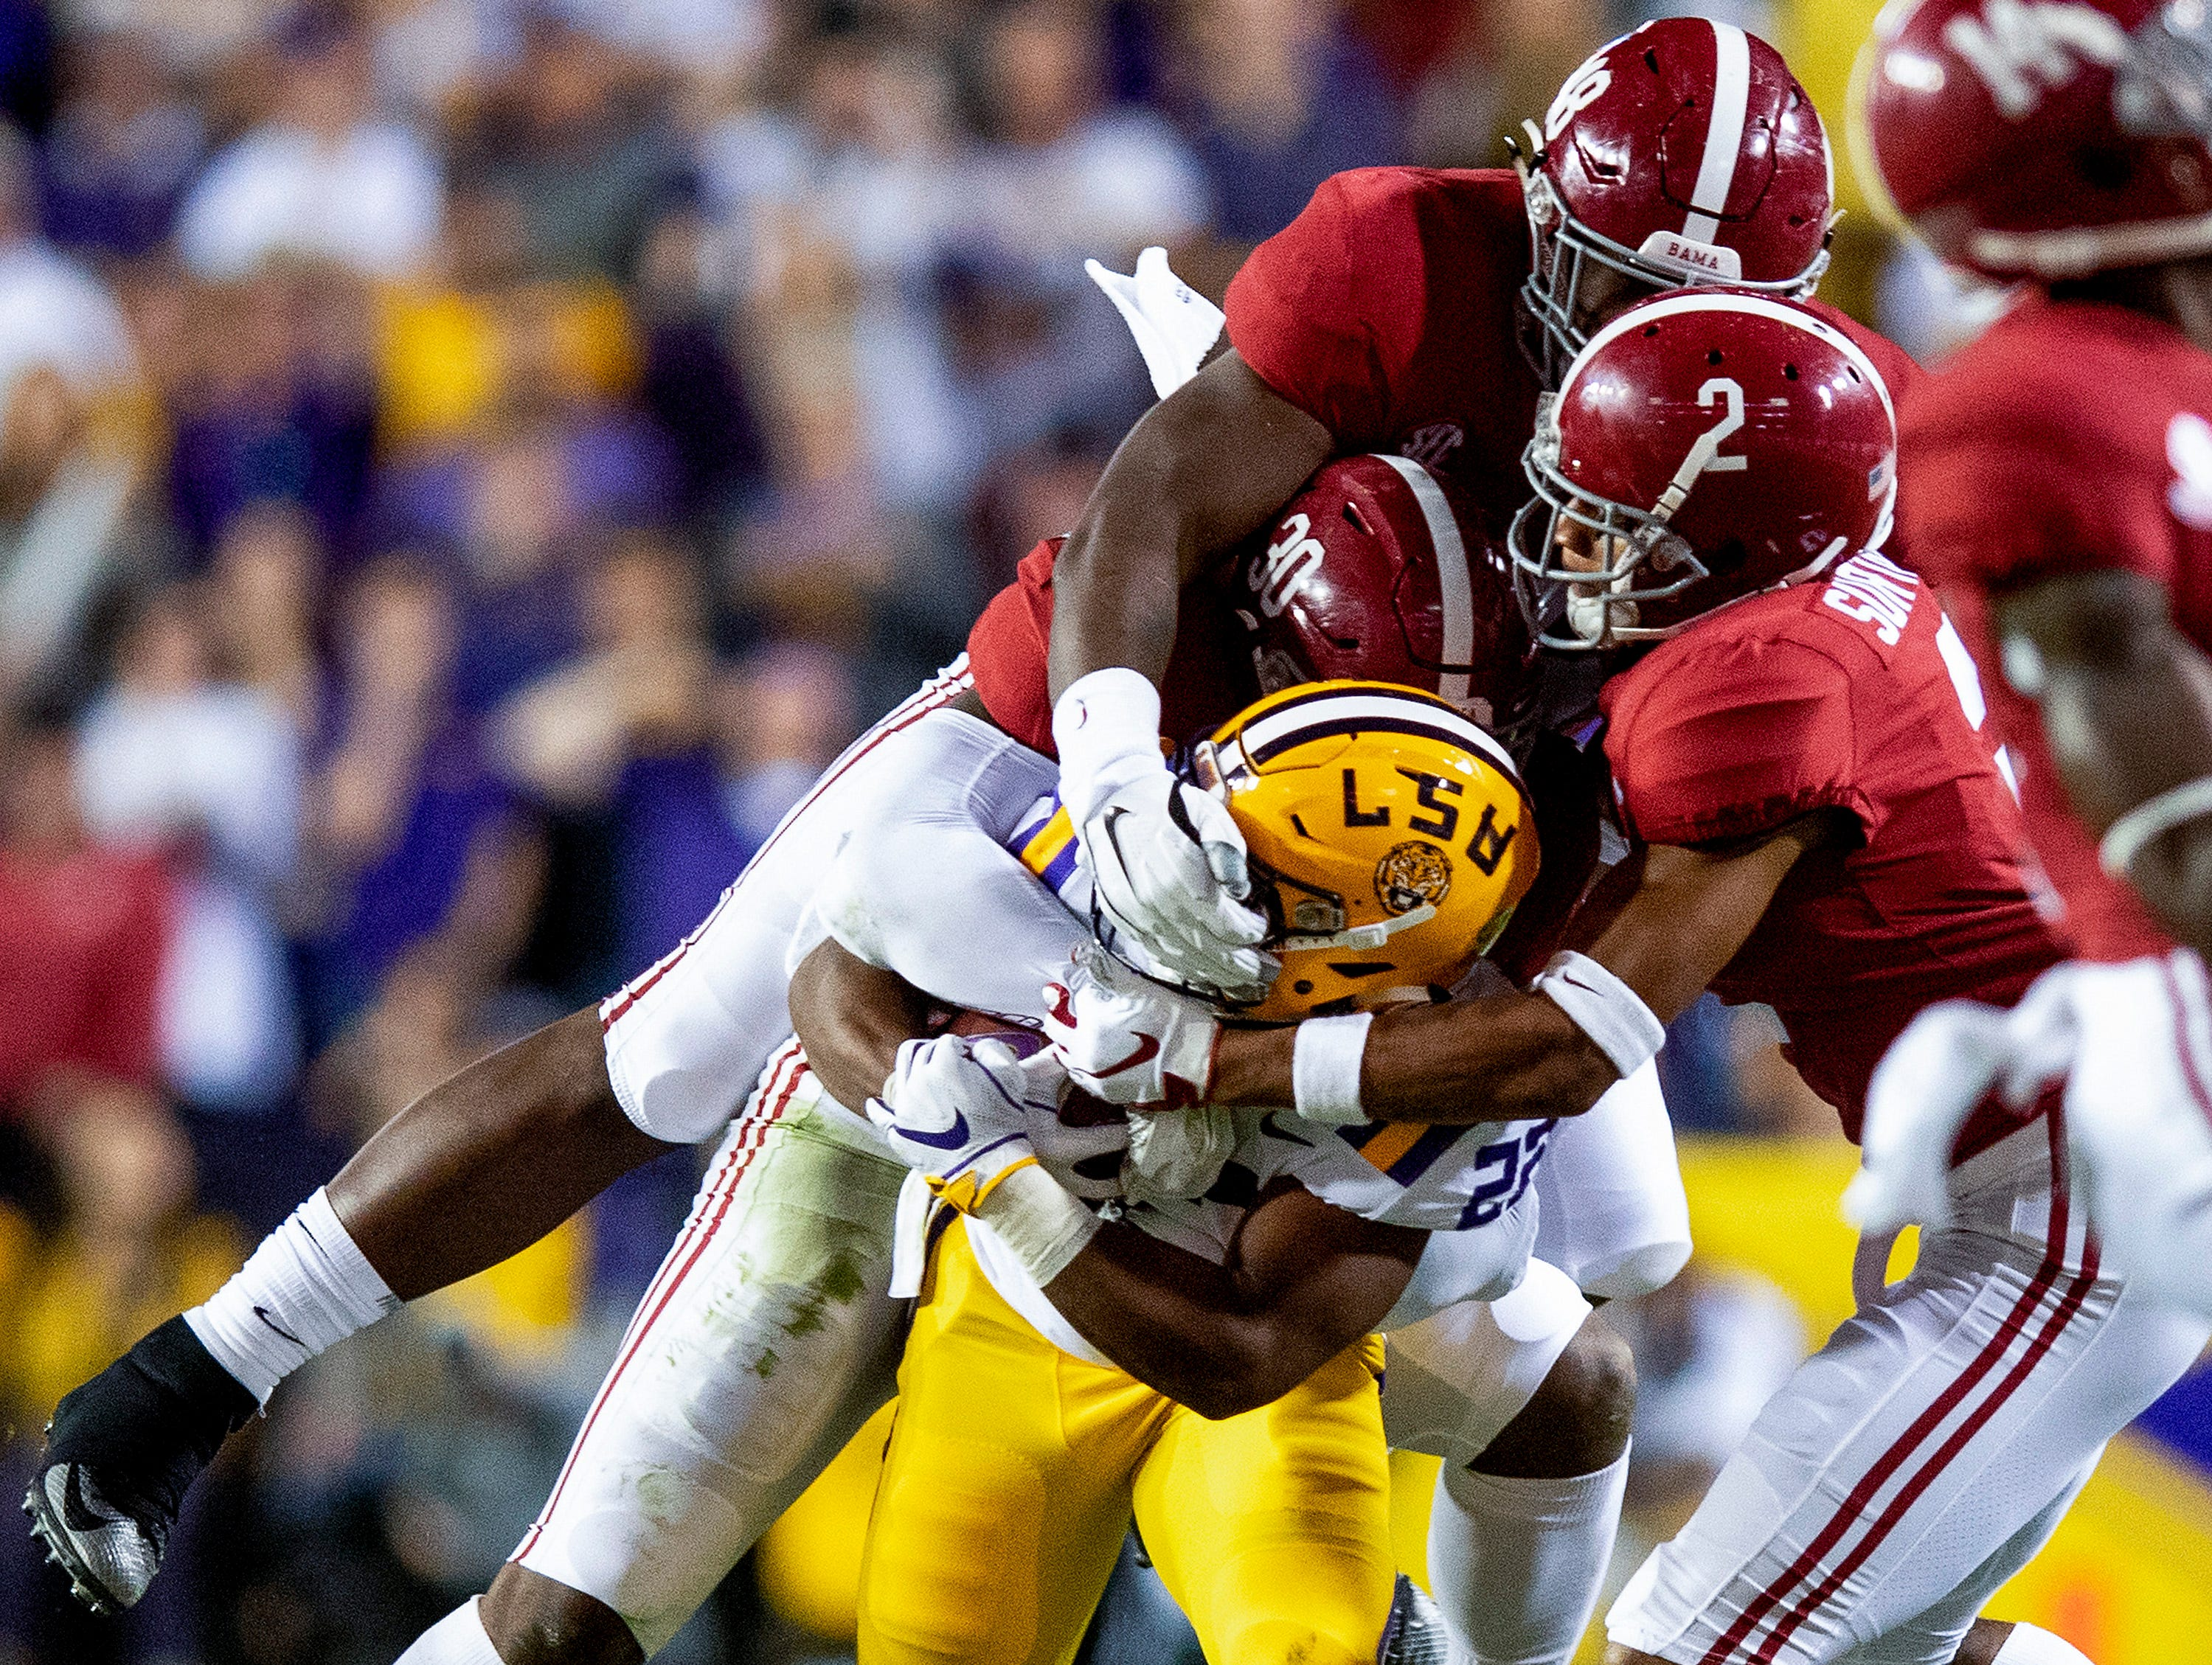 Louisiana State University running back Clyde Edwards-Helaire (22)  is tackled by Alabama linebacker Mack Wilson (30), defensive back Patrick Surtain, II, (2) and defensive lineman Phidarian Mathis (48) in first half action at Tiger Stadium in Baton Rouge, La., on Saturday November 3, 2018.